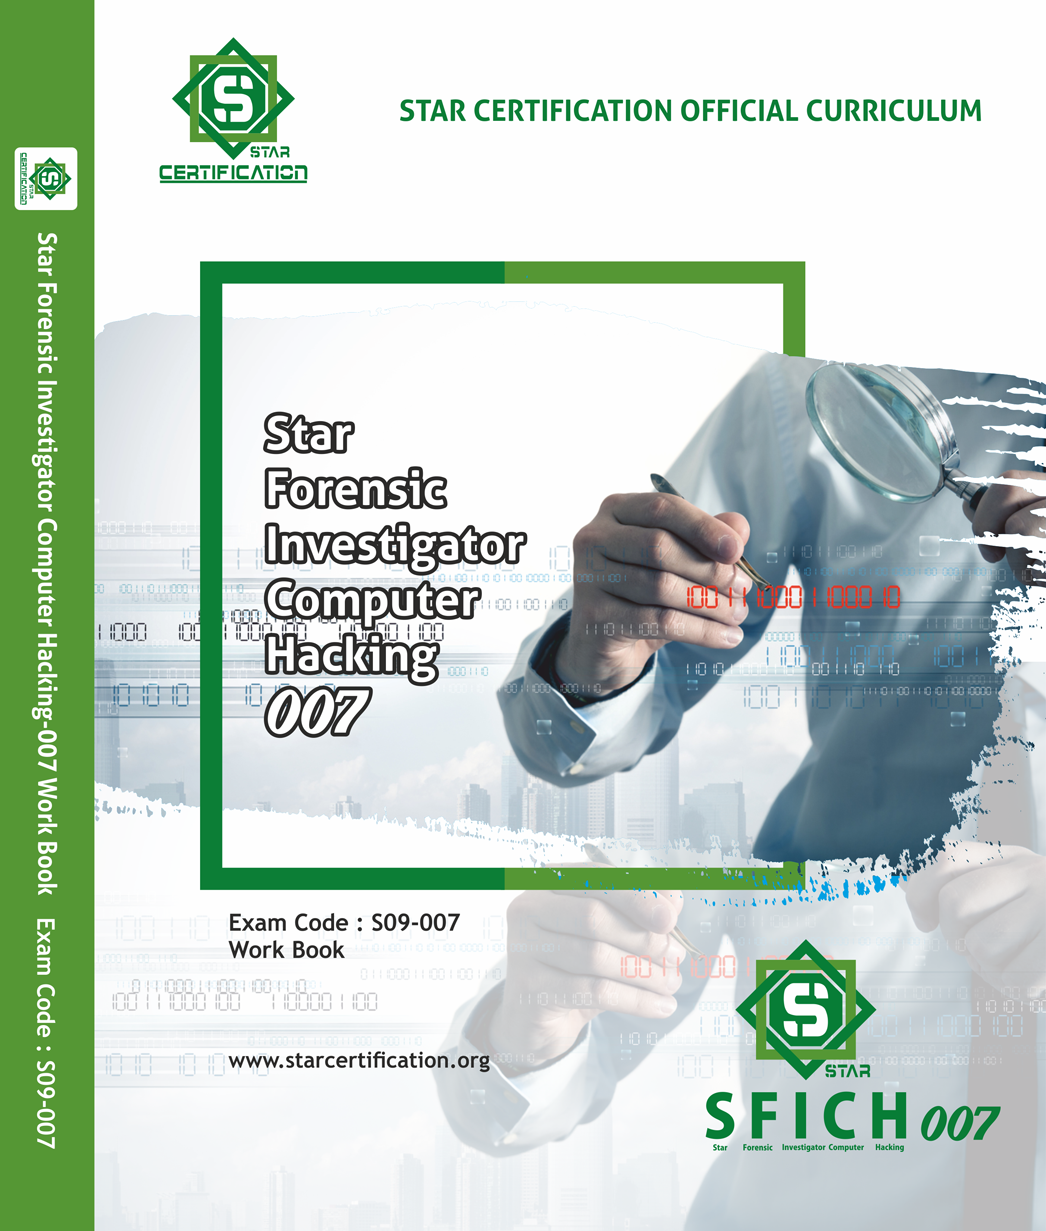 Star Certification Star Forensic Investigator In Computer Hacking